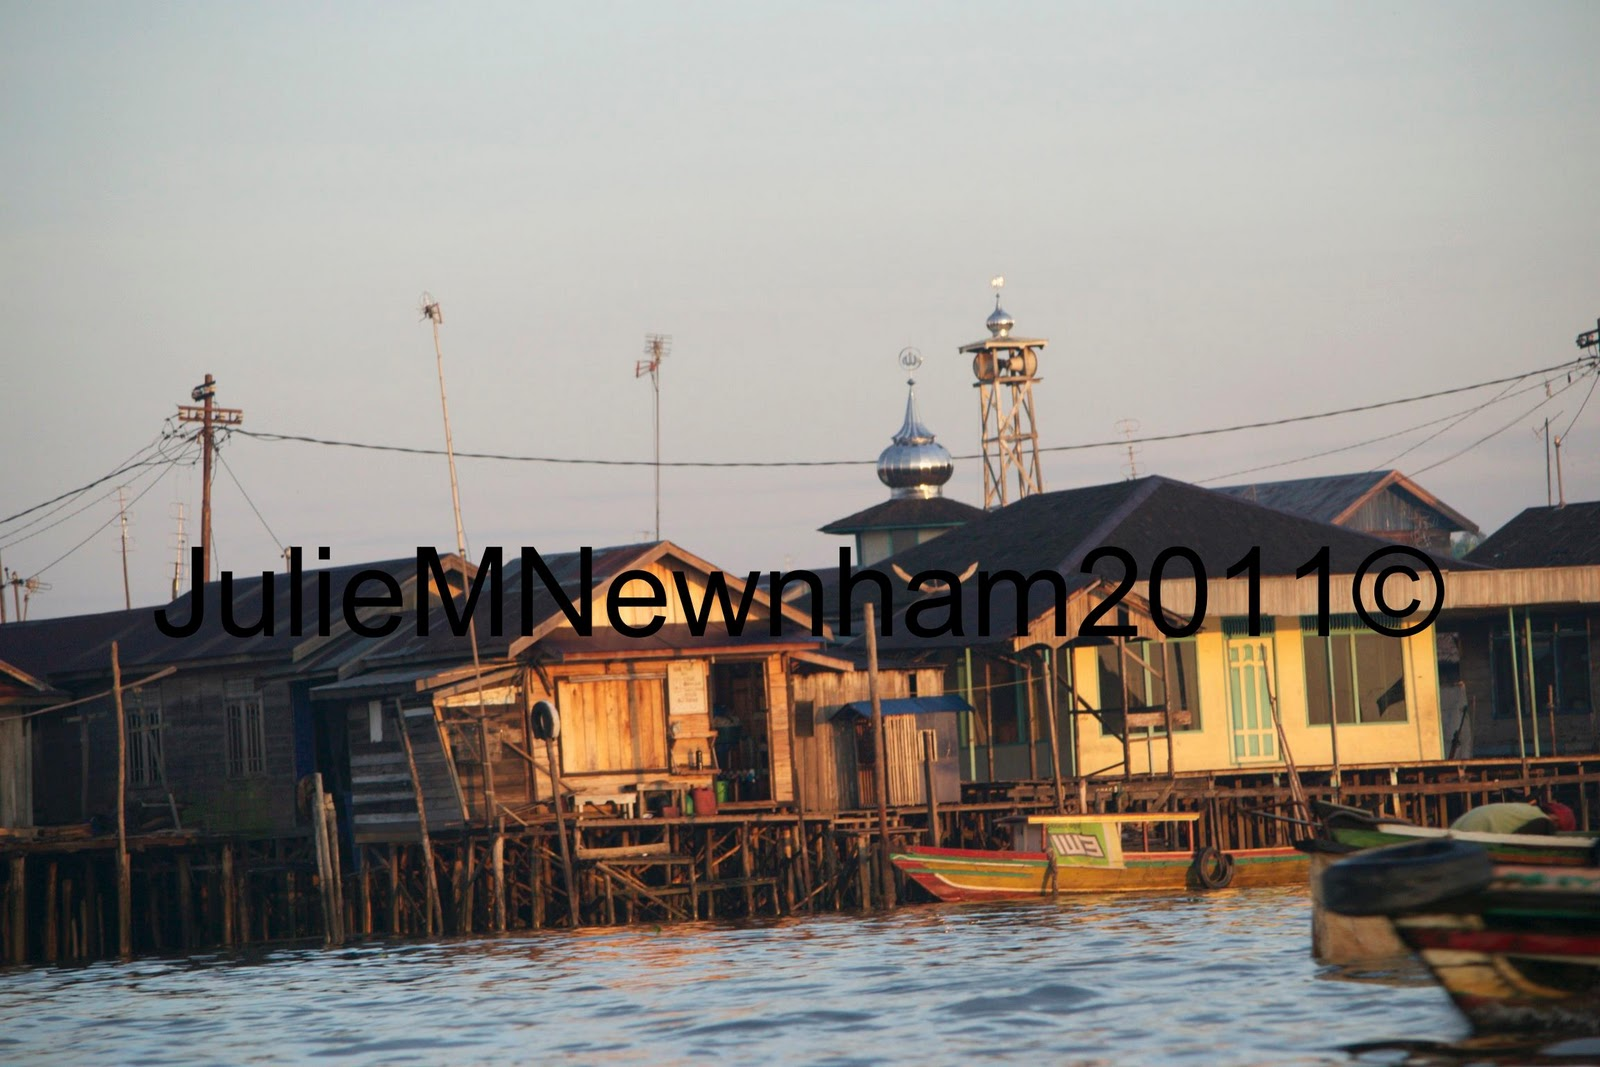 Banjarmasin Indonesia  City pictures : The ship in the background was bound for Surabaya but burnt down one ...